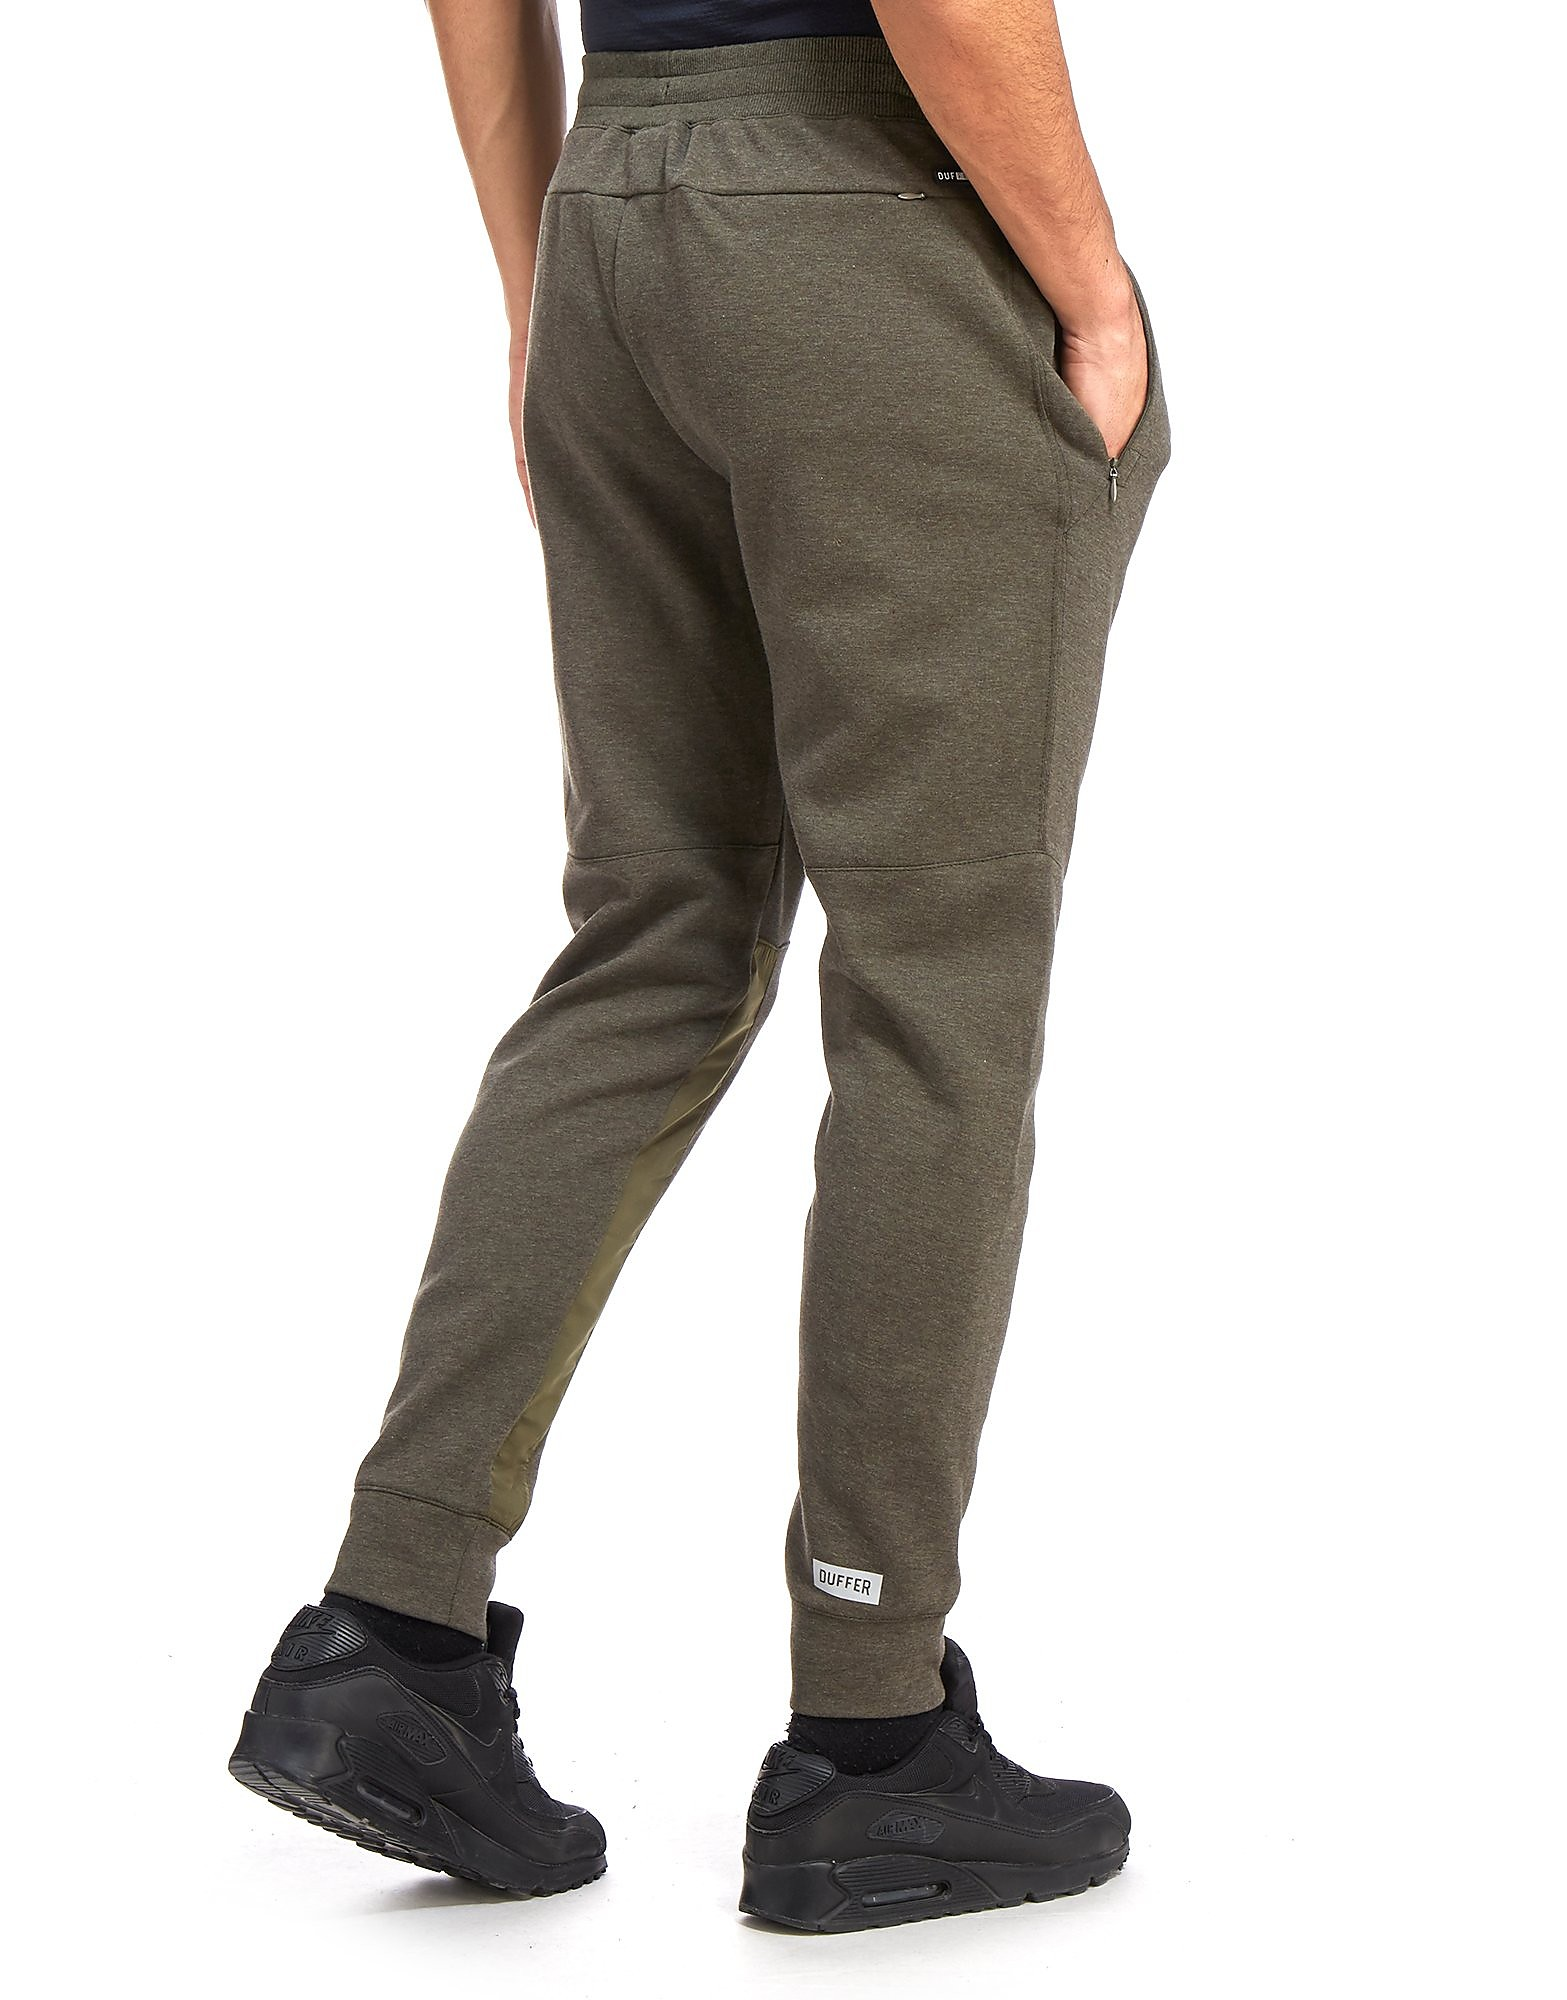 Duffer of St George Resource Jogging Pants